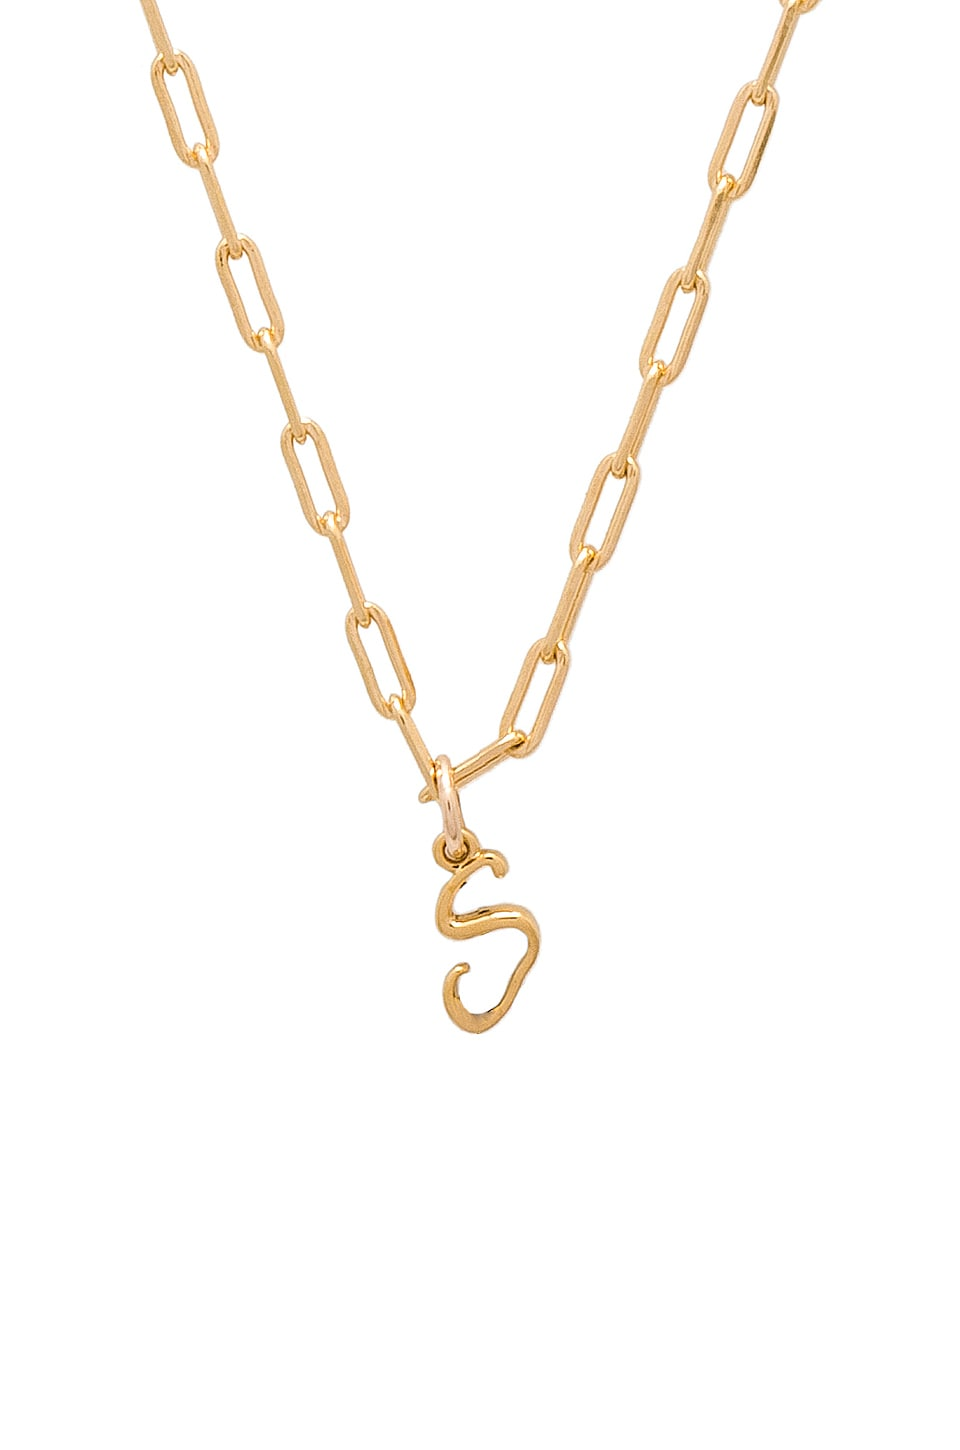 JOOLZ BY MARTHA CALVO S Initial Necklace in Metallic Gold